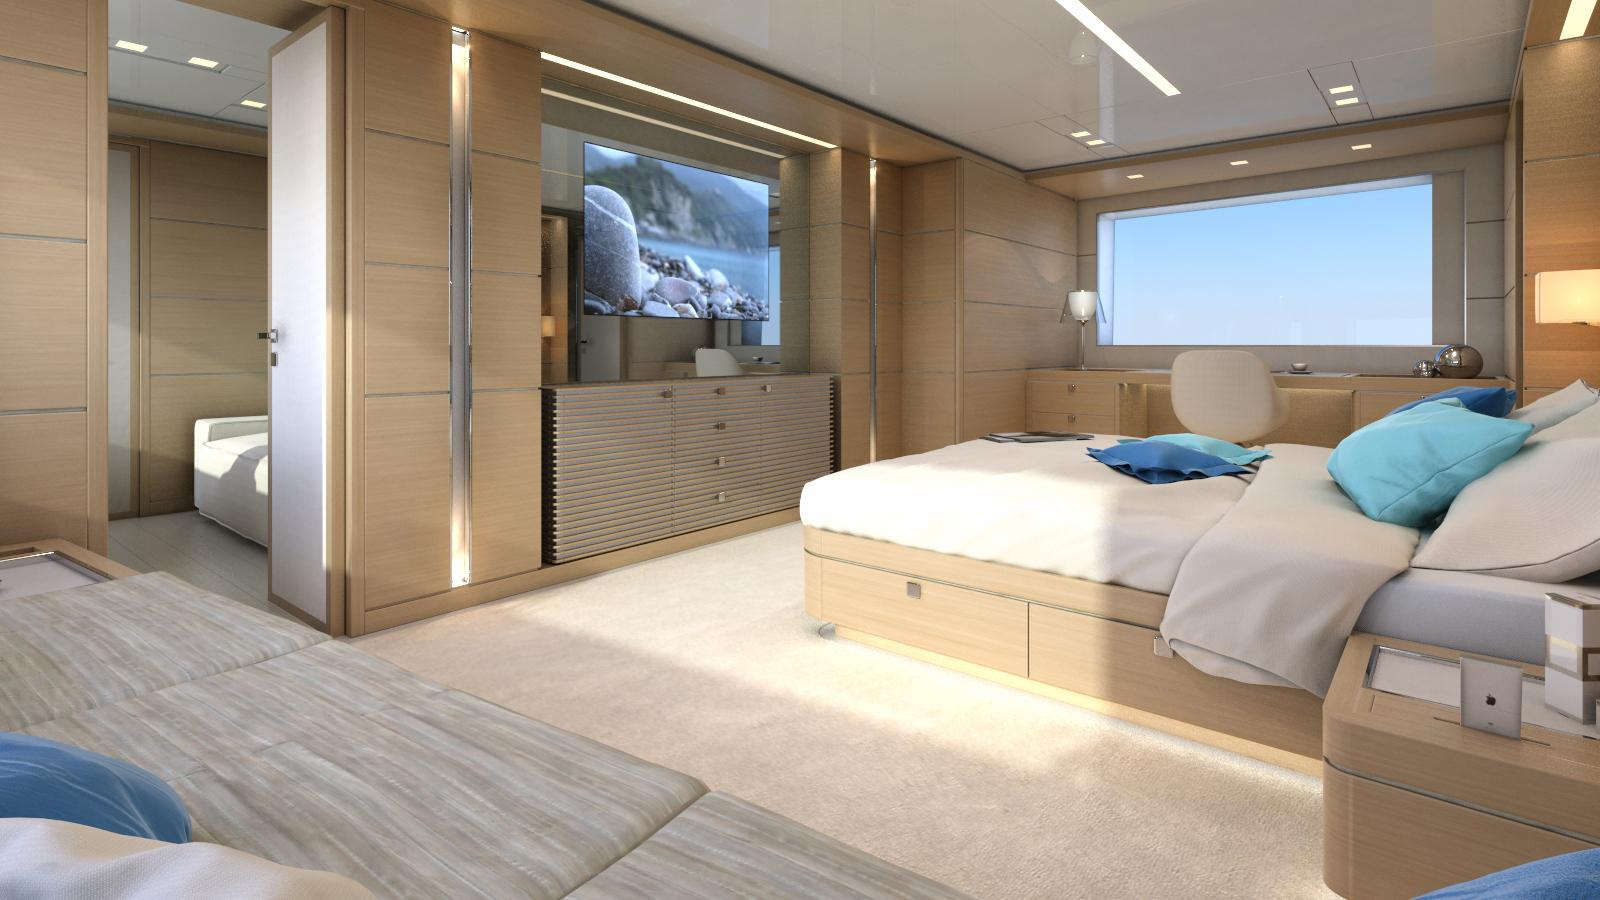 narvalo-motor-yacht-cantiere-delle-marche-2016-31m-nauta-air-108-stateroom